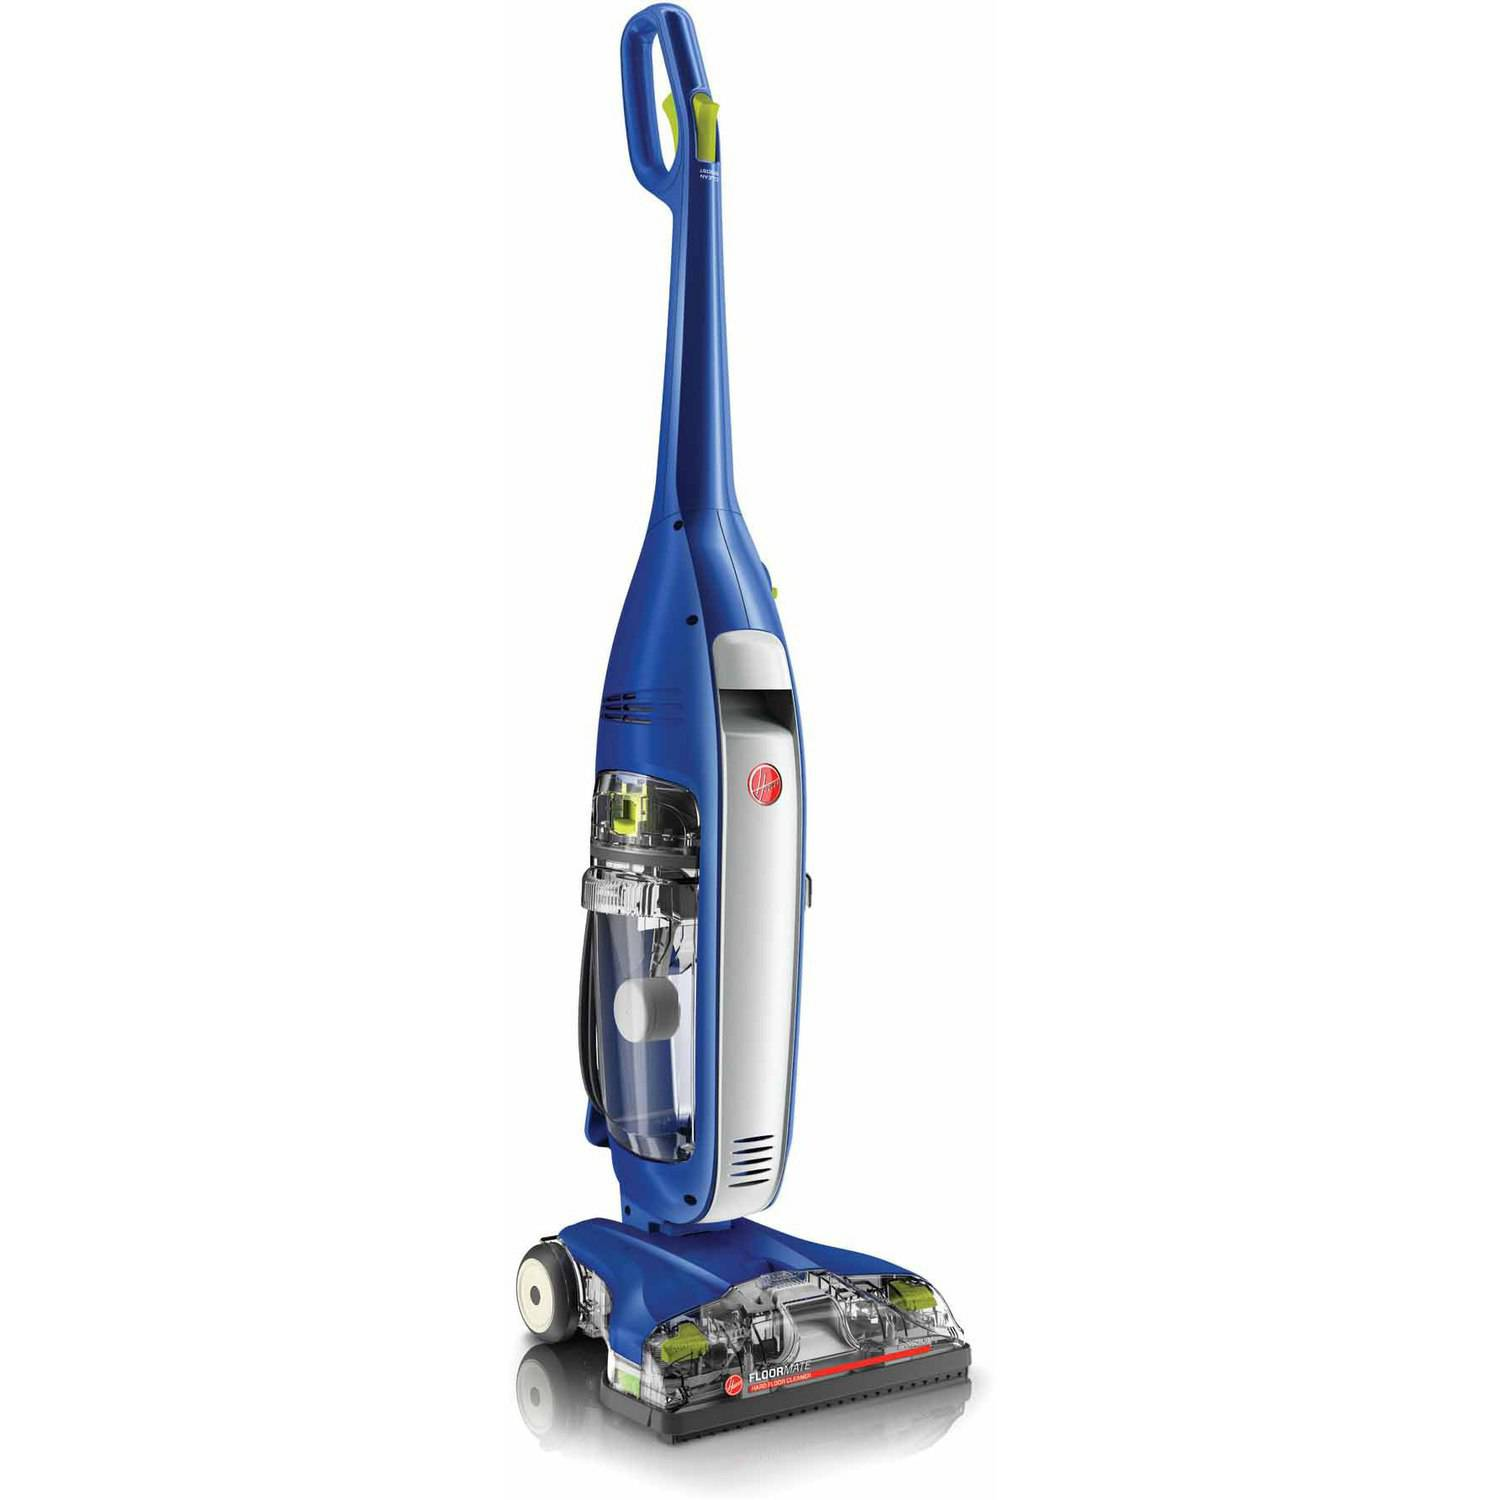 hoover me near hardwood best machine s floor vacuum cleaning australia cleaner floors hard rental solution